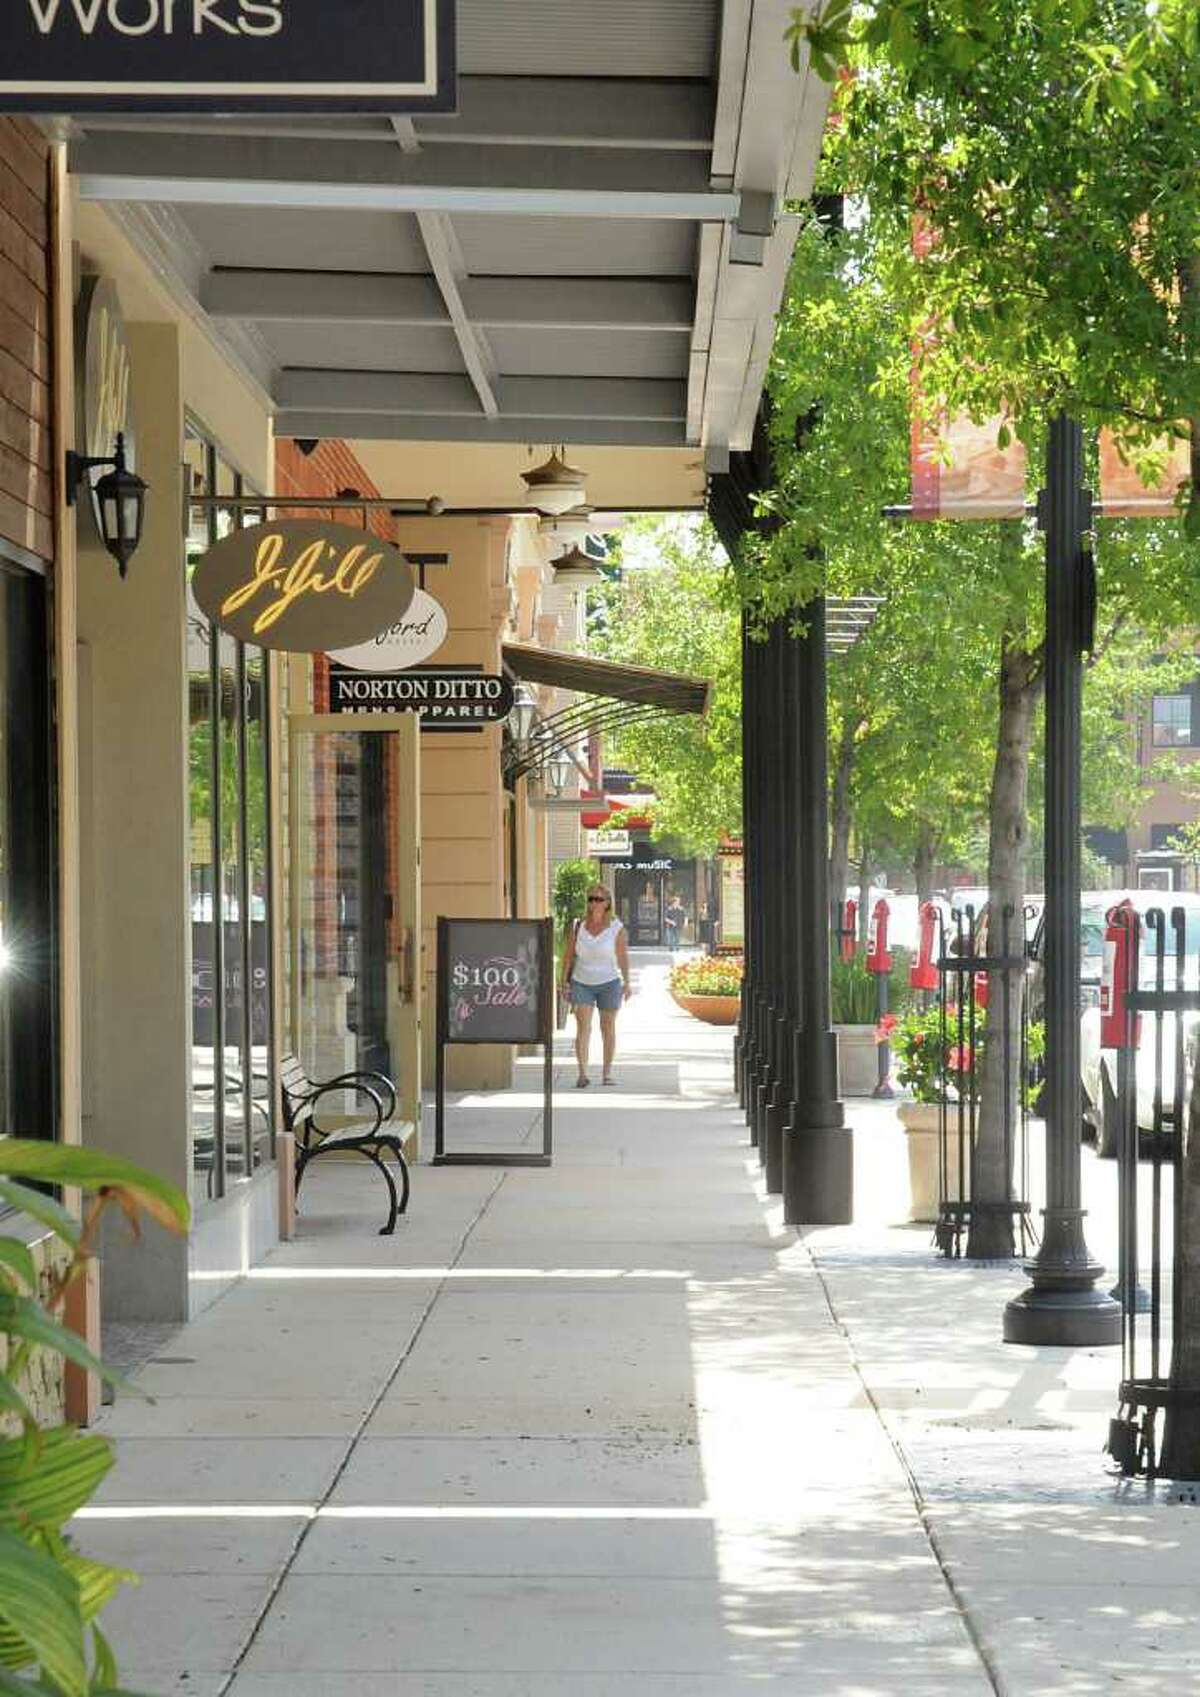 The Woodlands: Market Street Near its scenic counterpart, Market Street has more retail as well as a small park in its center. Upcoming tenants include Lucky Brand and Kate Spade.